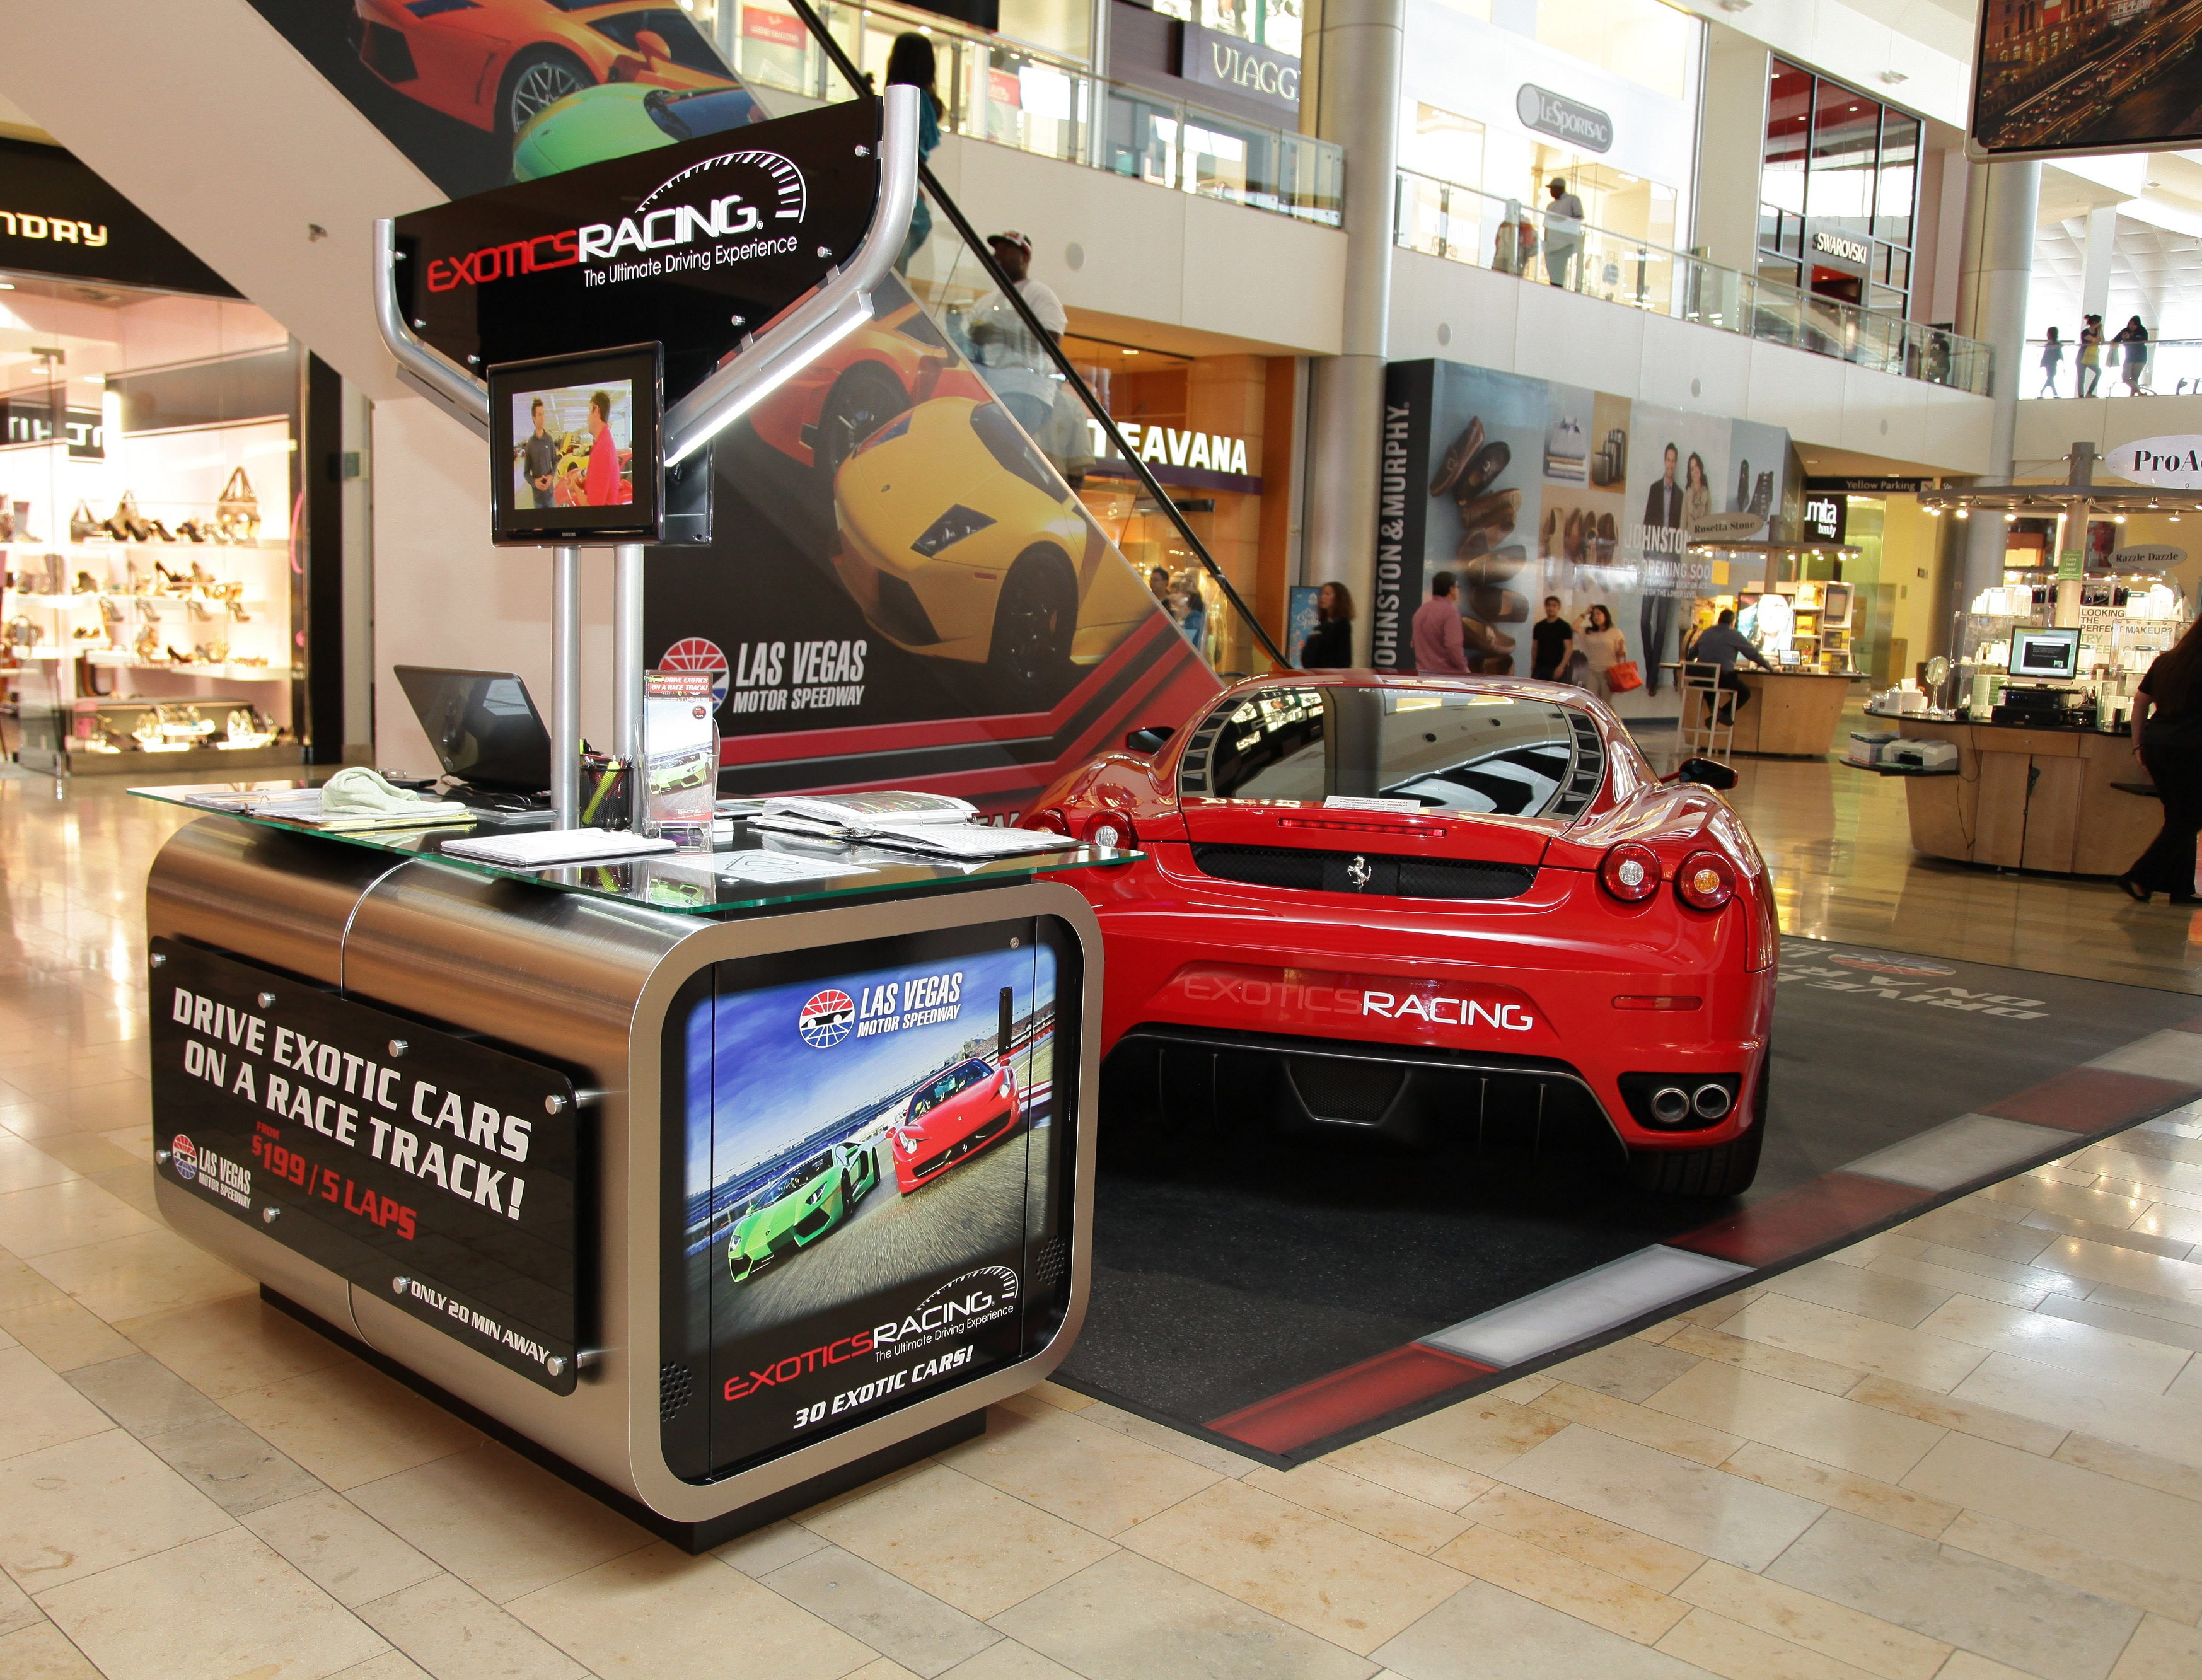 Exotics Racing Launches Booth At Fashion Show Mall Offers Driving